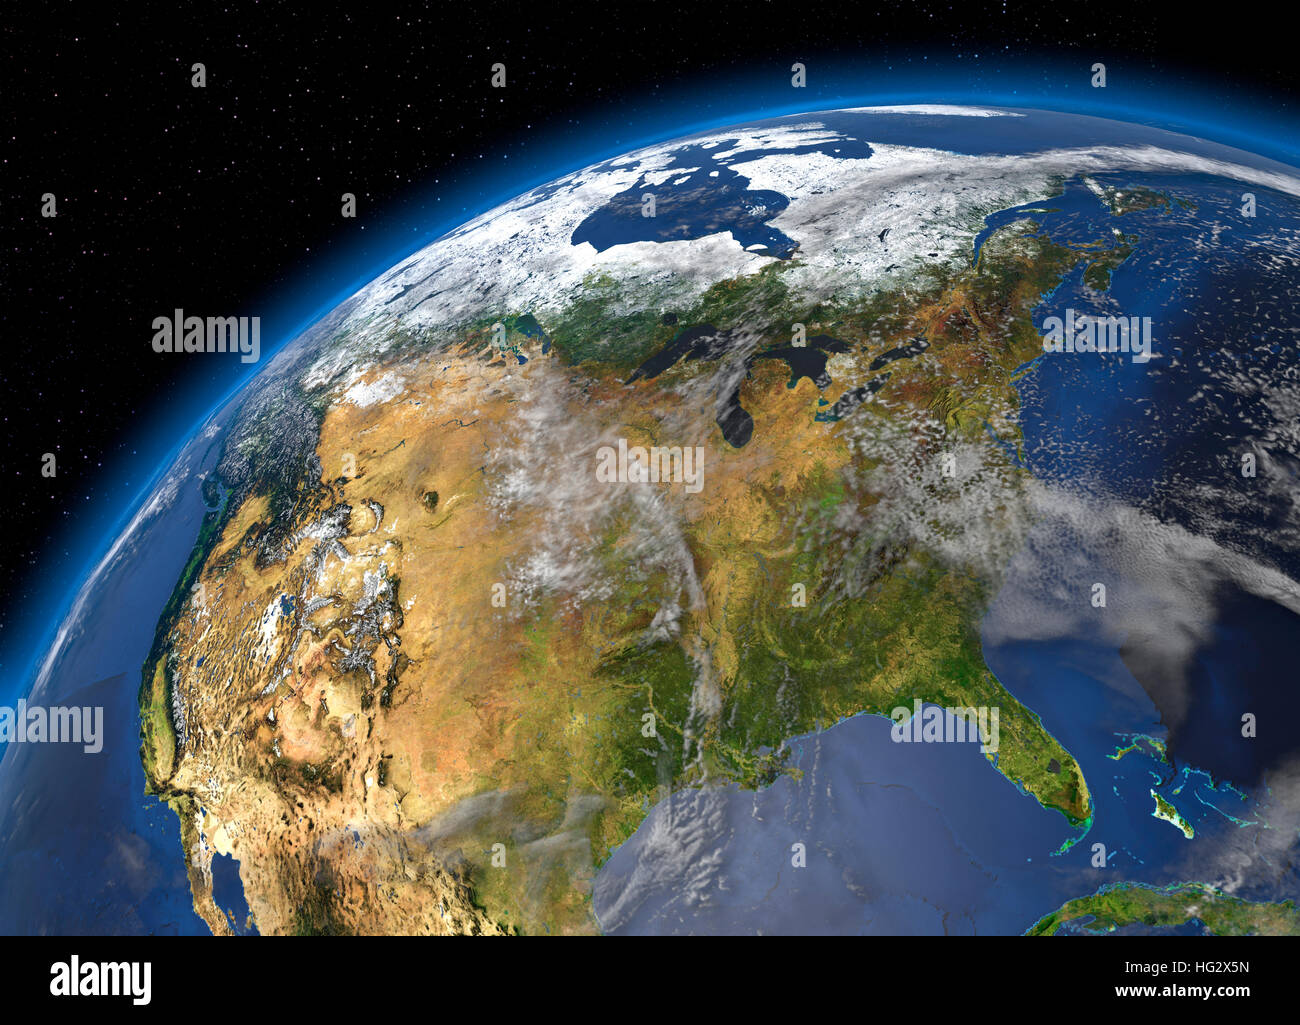 Earth viewed from space showing the United States. Realistic digital illustration including relief map hill shading - Stock Image